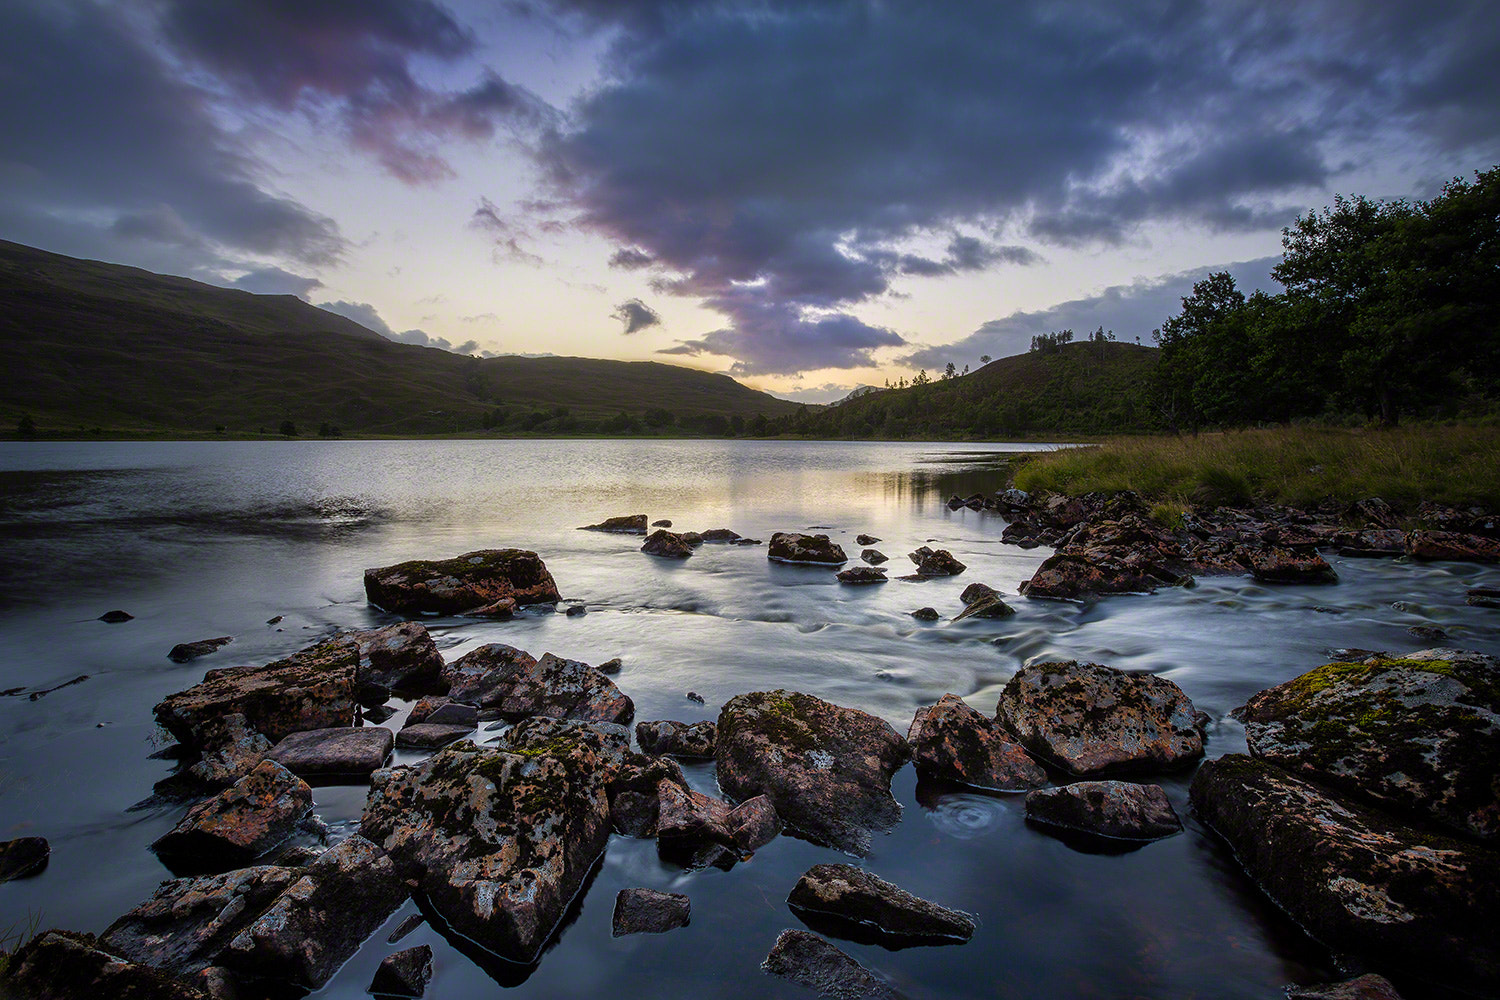 Photograph Loch Carrie Sunrise by Craig McCormick on 500px